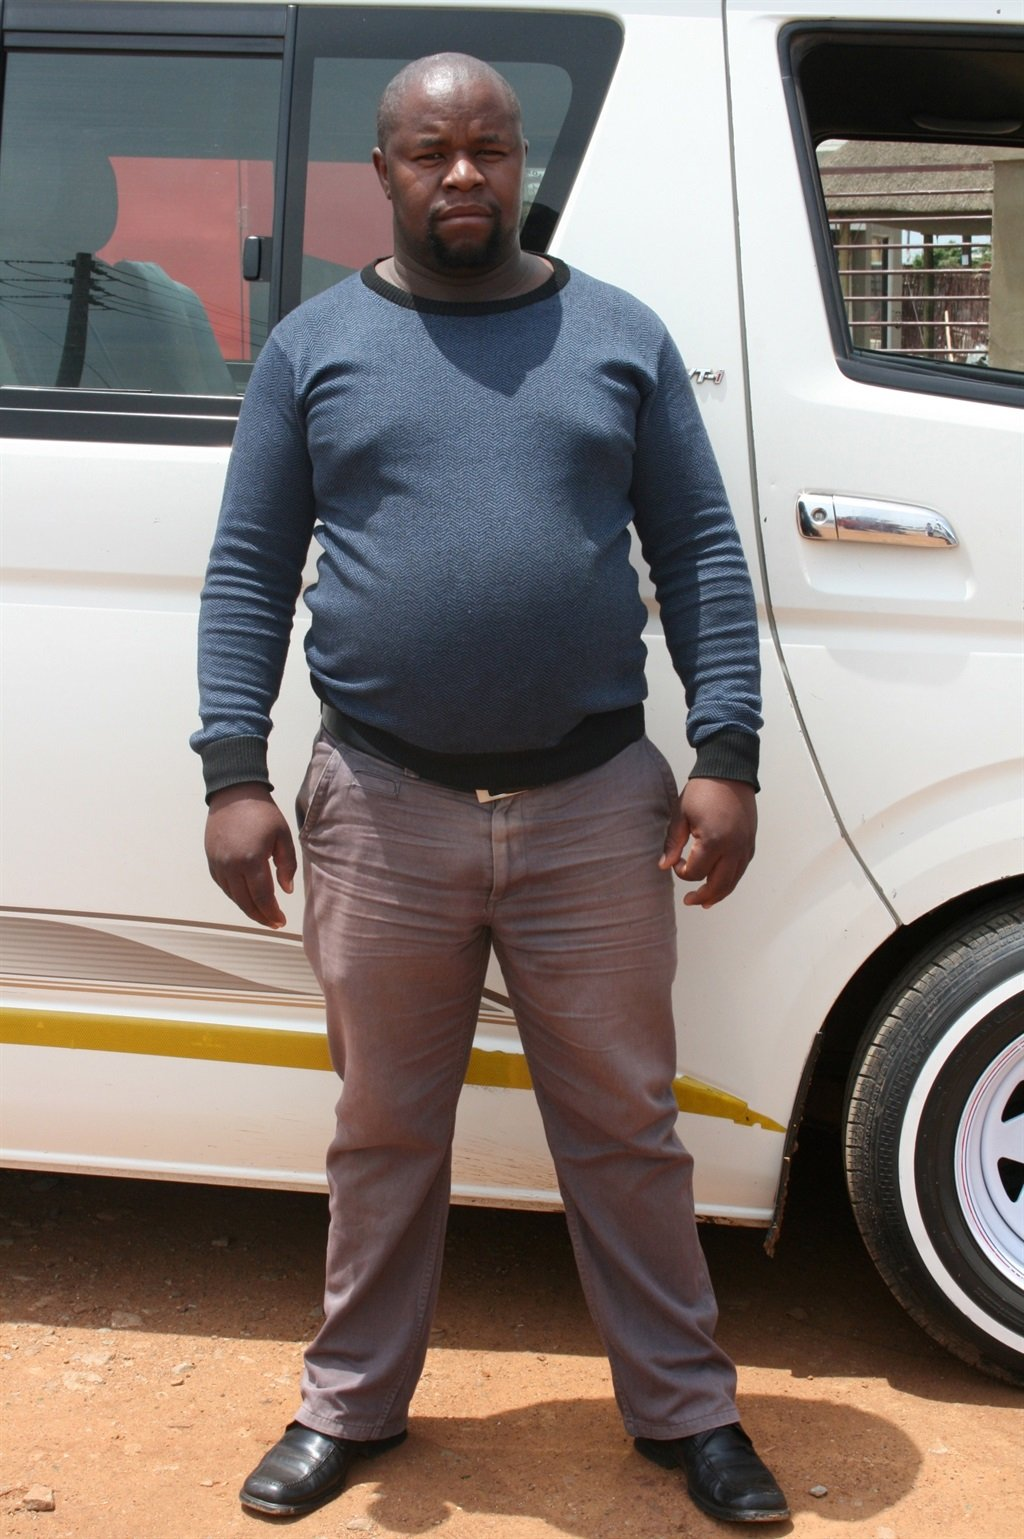 Fuelled by sugar and carbs: That's how taxi drivers get through long days | City Press thumbnail